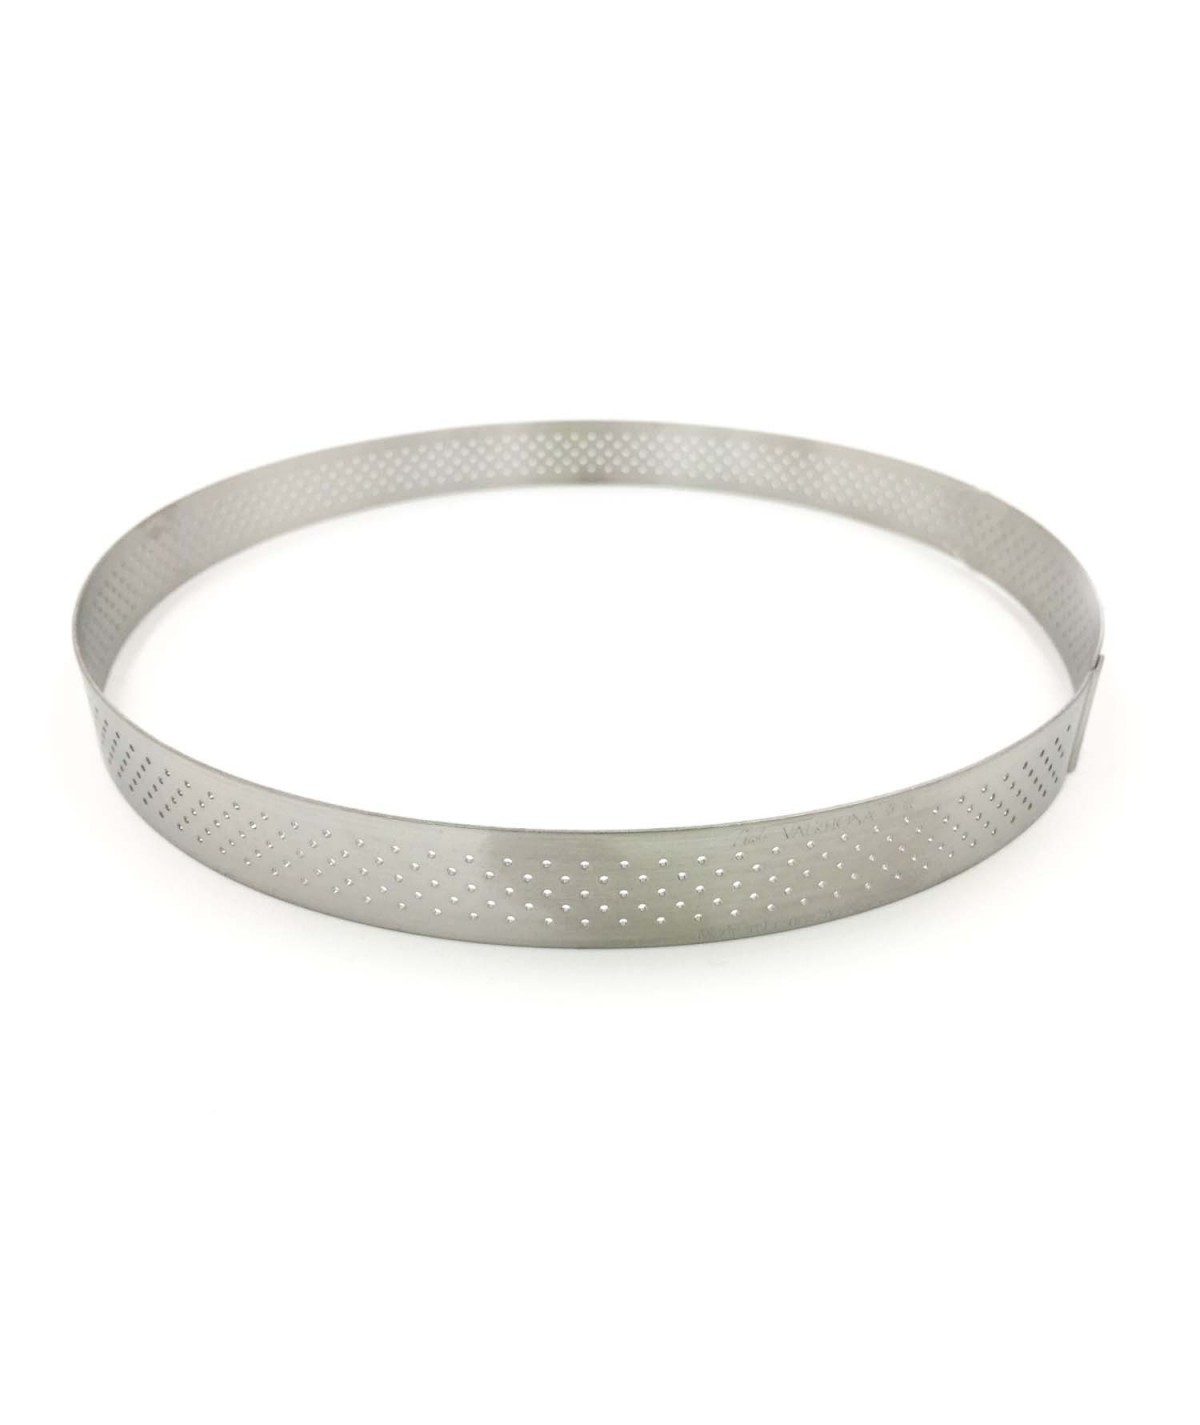 De Buyer - Straight edge perforated tart ring in stainless steel - Round 20cm